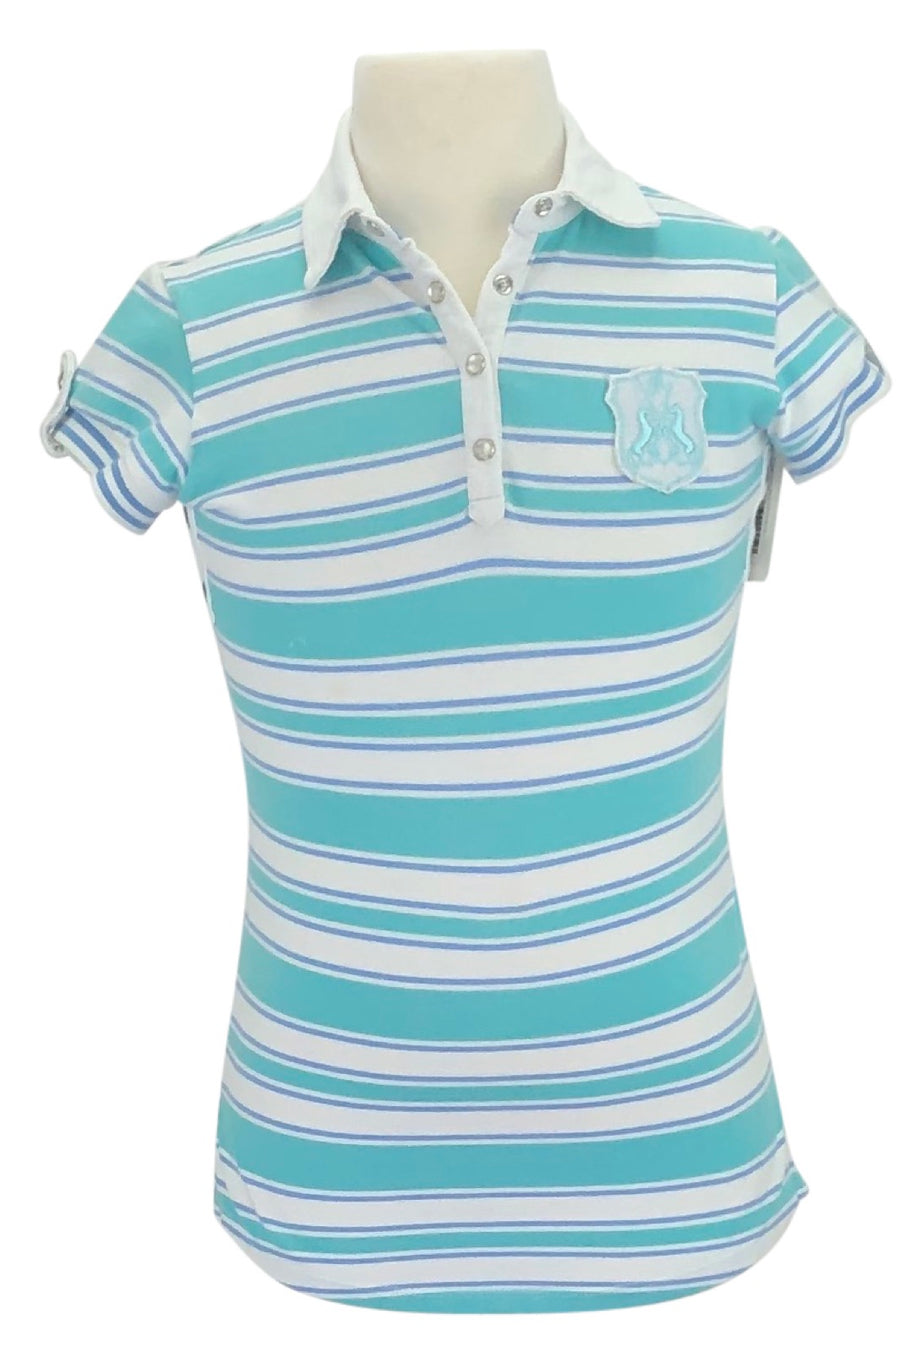 Goode Rider Polo in Blue/White